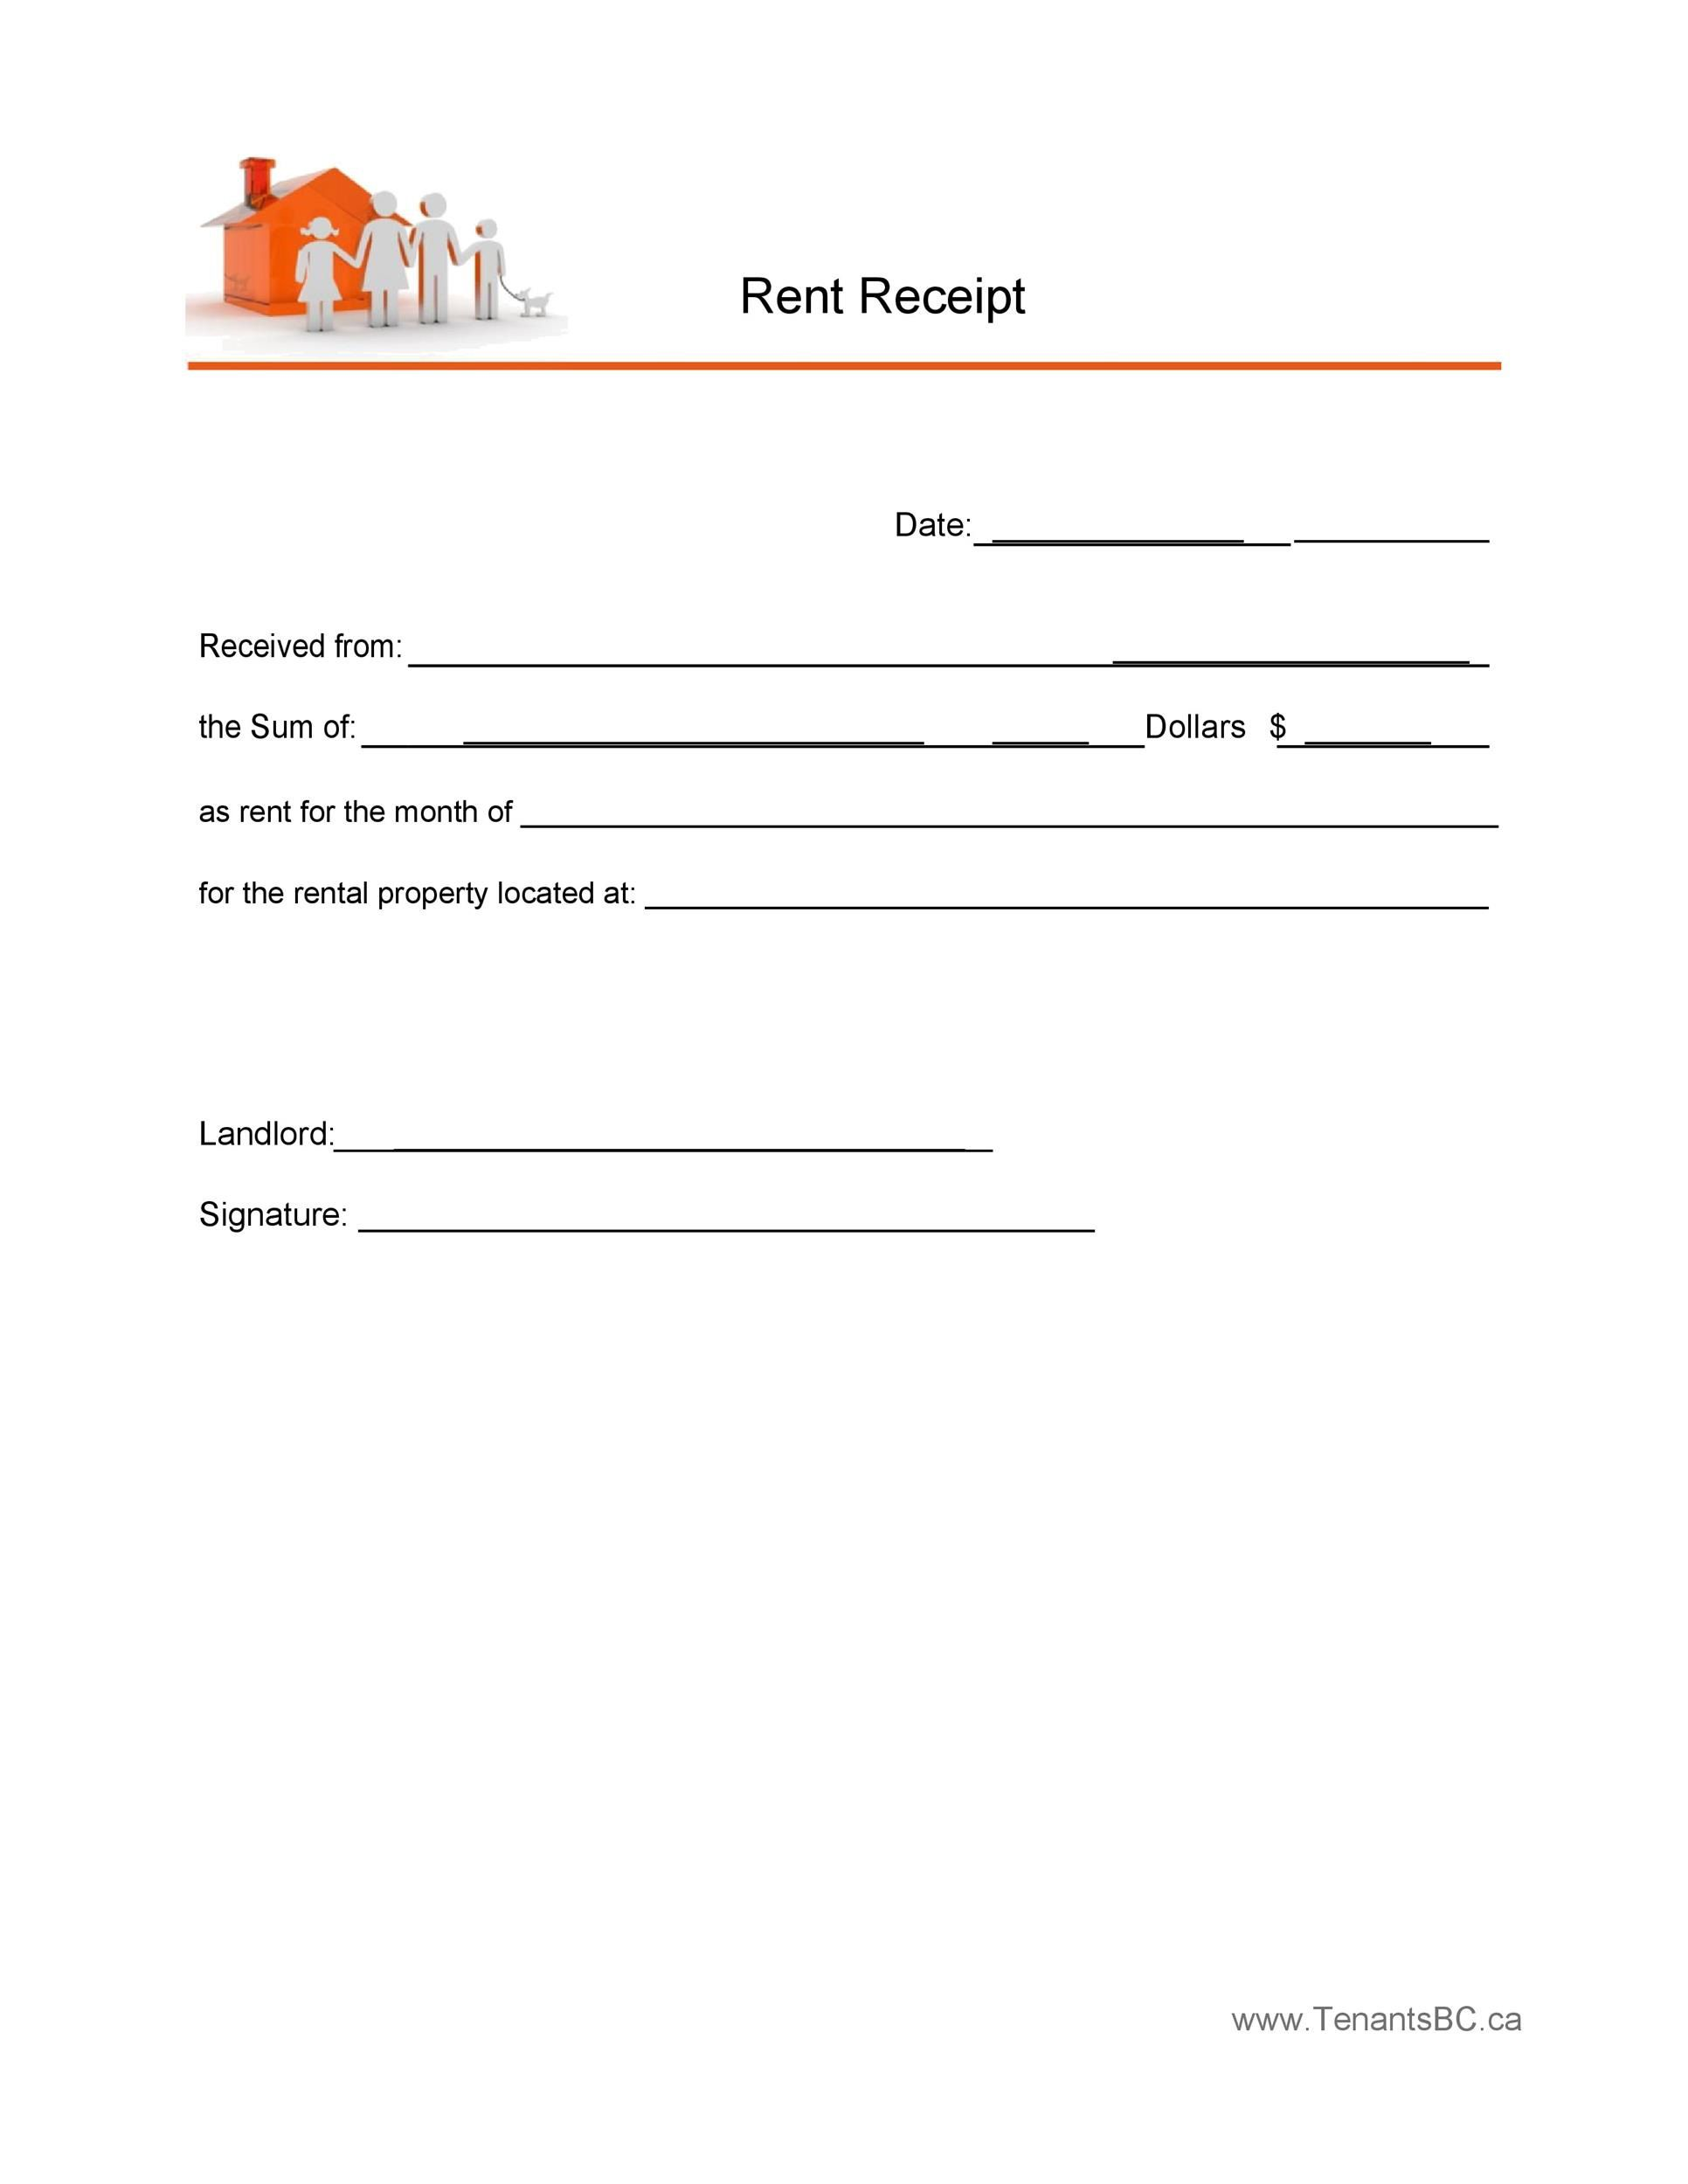 008 Surprising House Rent Receipt Sample Doc Highest Clarity  Template India Bill Format Word Document Pdf DownloadFull